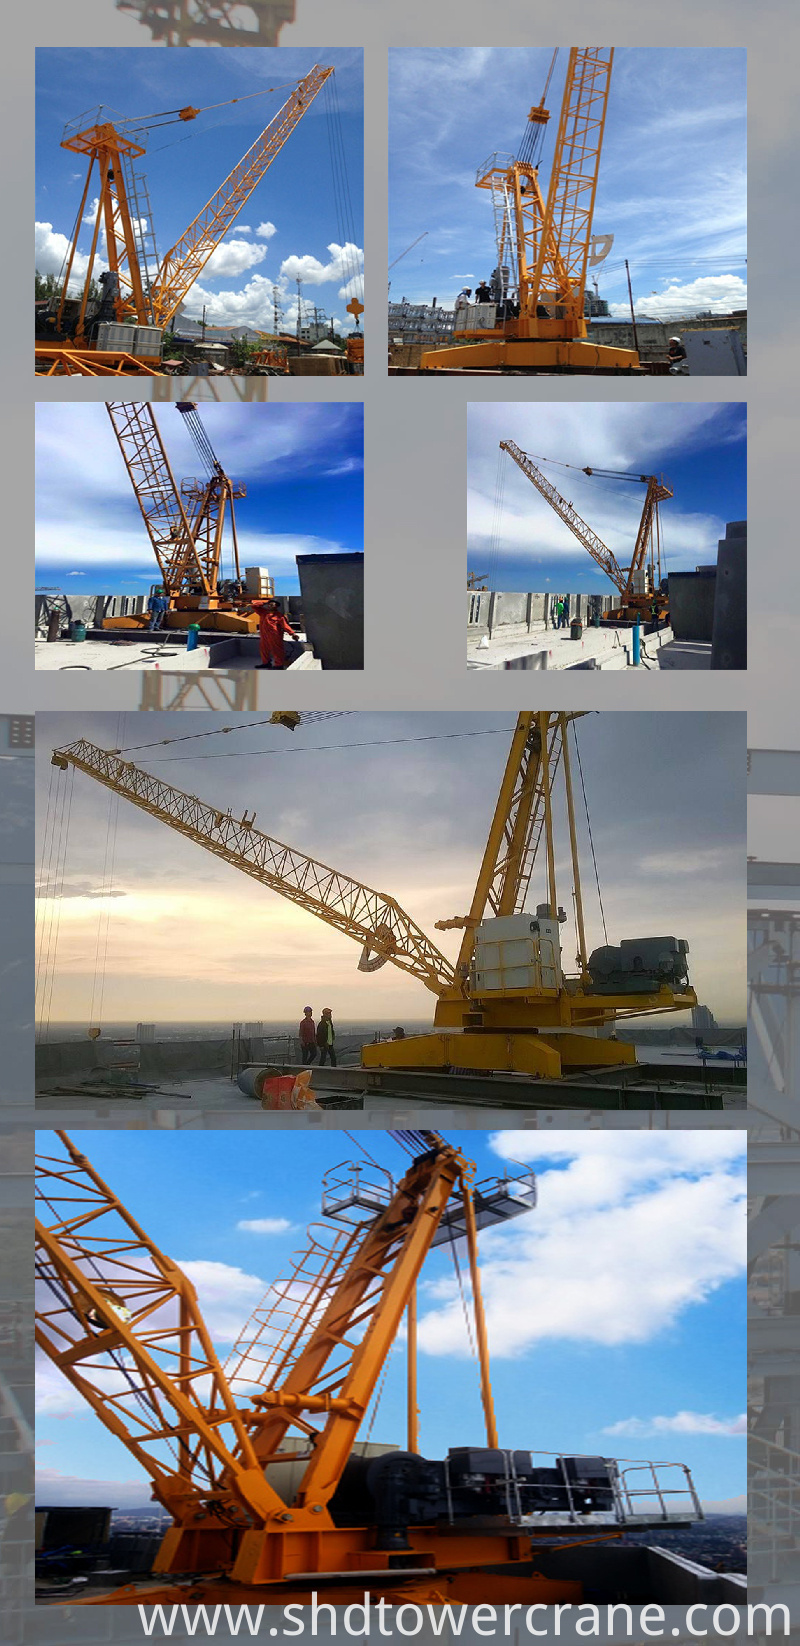 Use of Construction Cranes